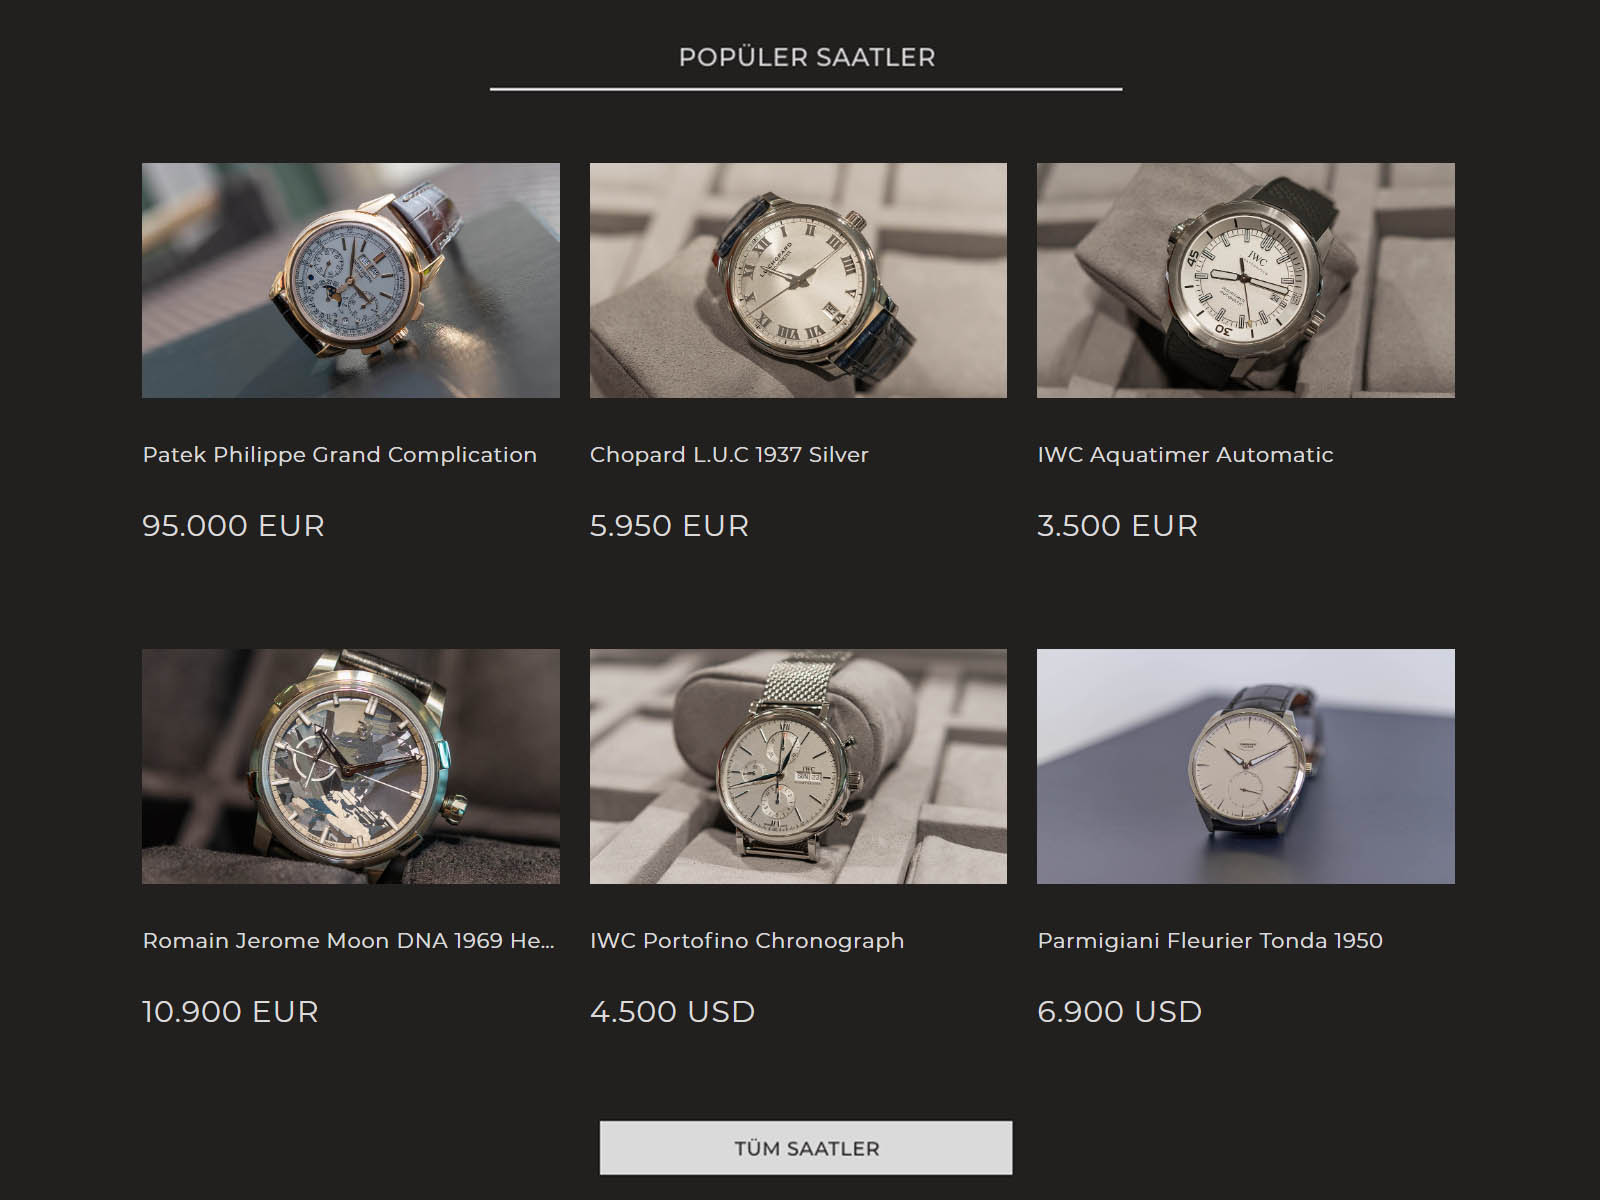 where-to-buy-and-sell-luxury-watches-online-horopool-2.jpg